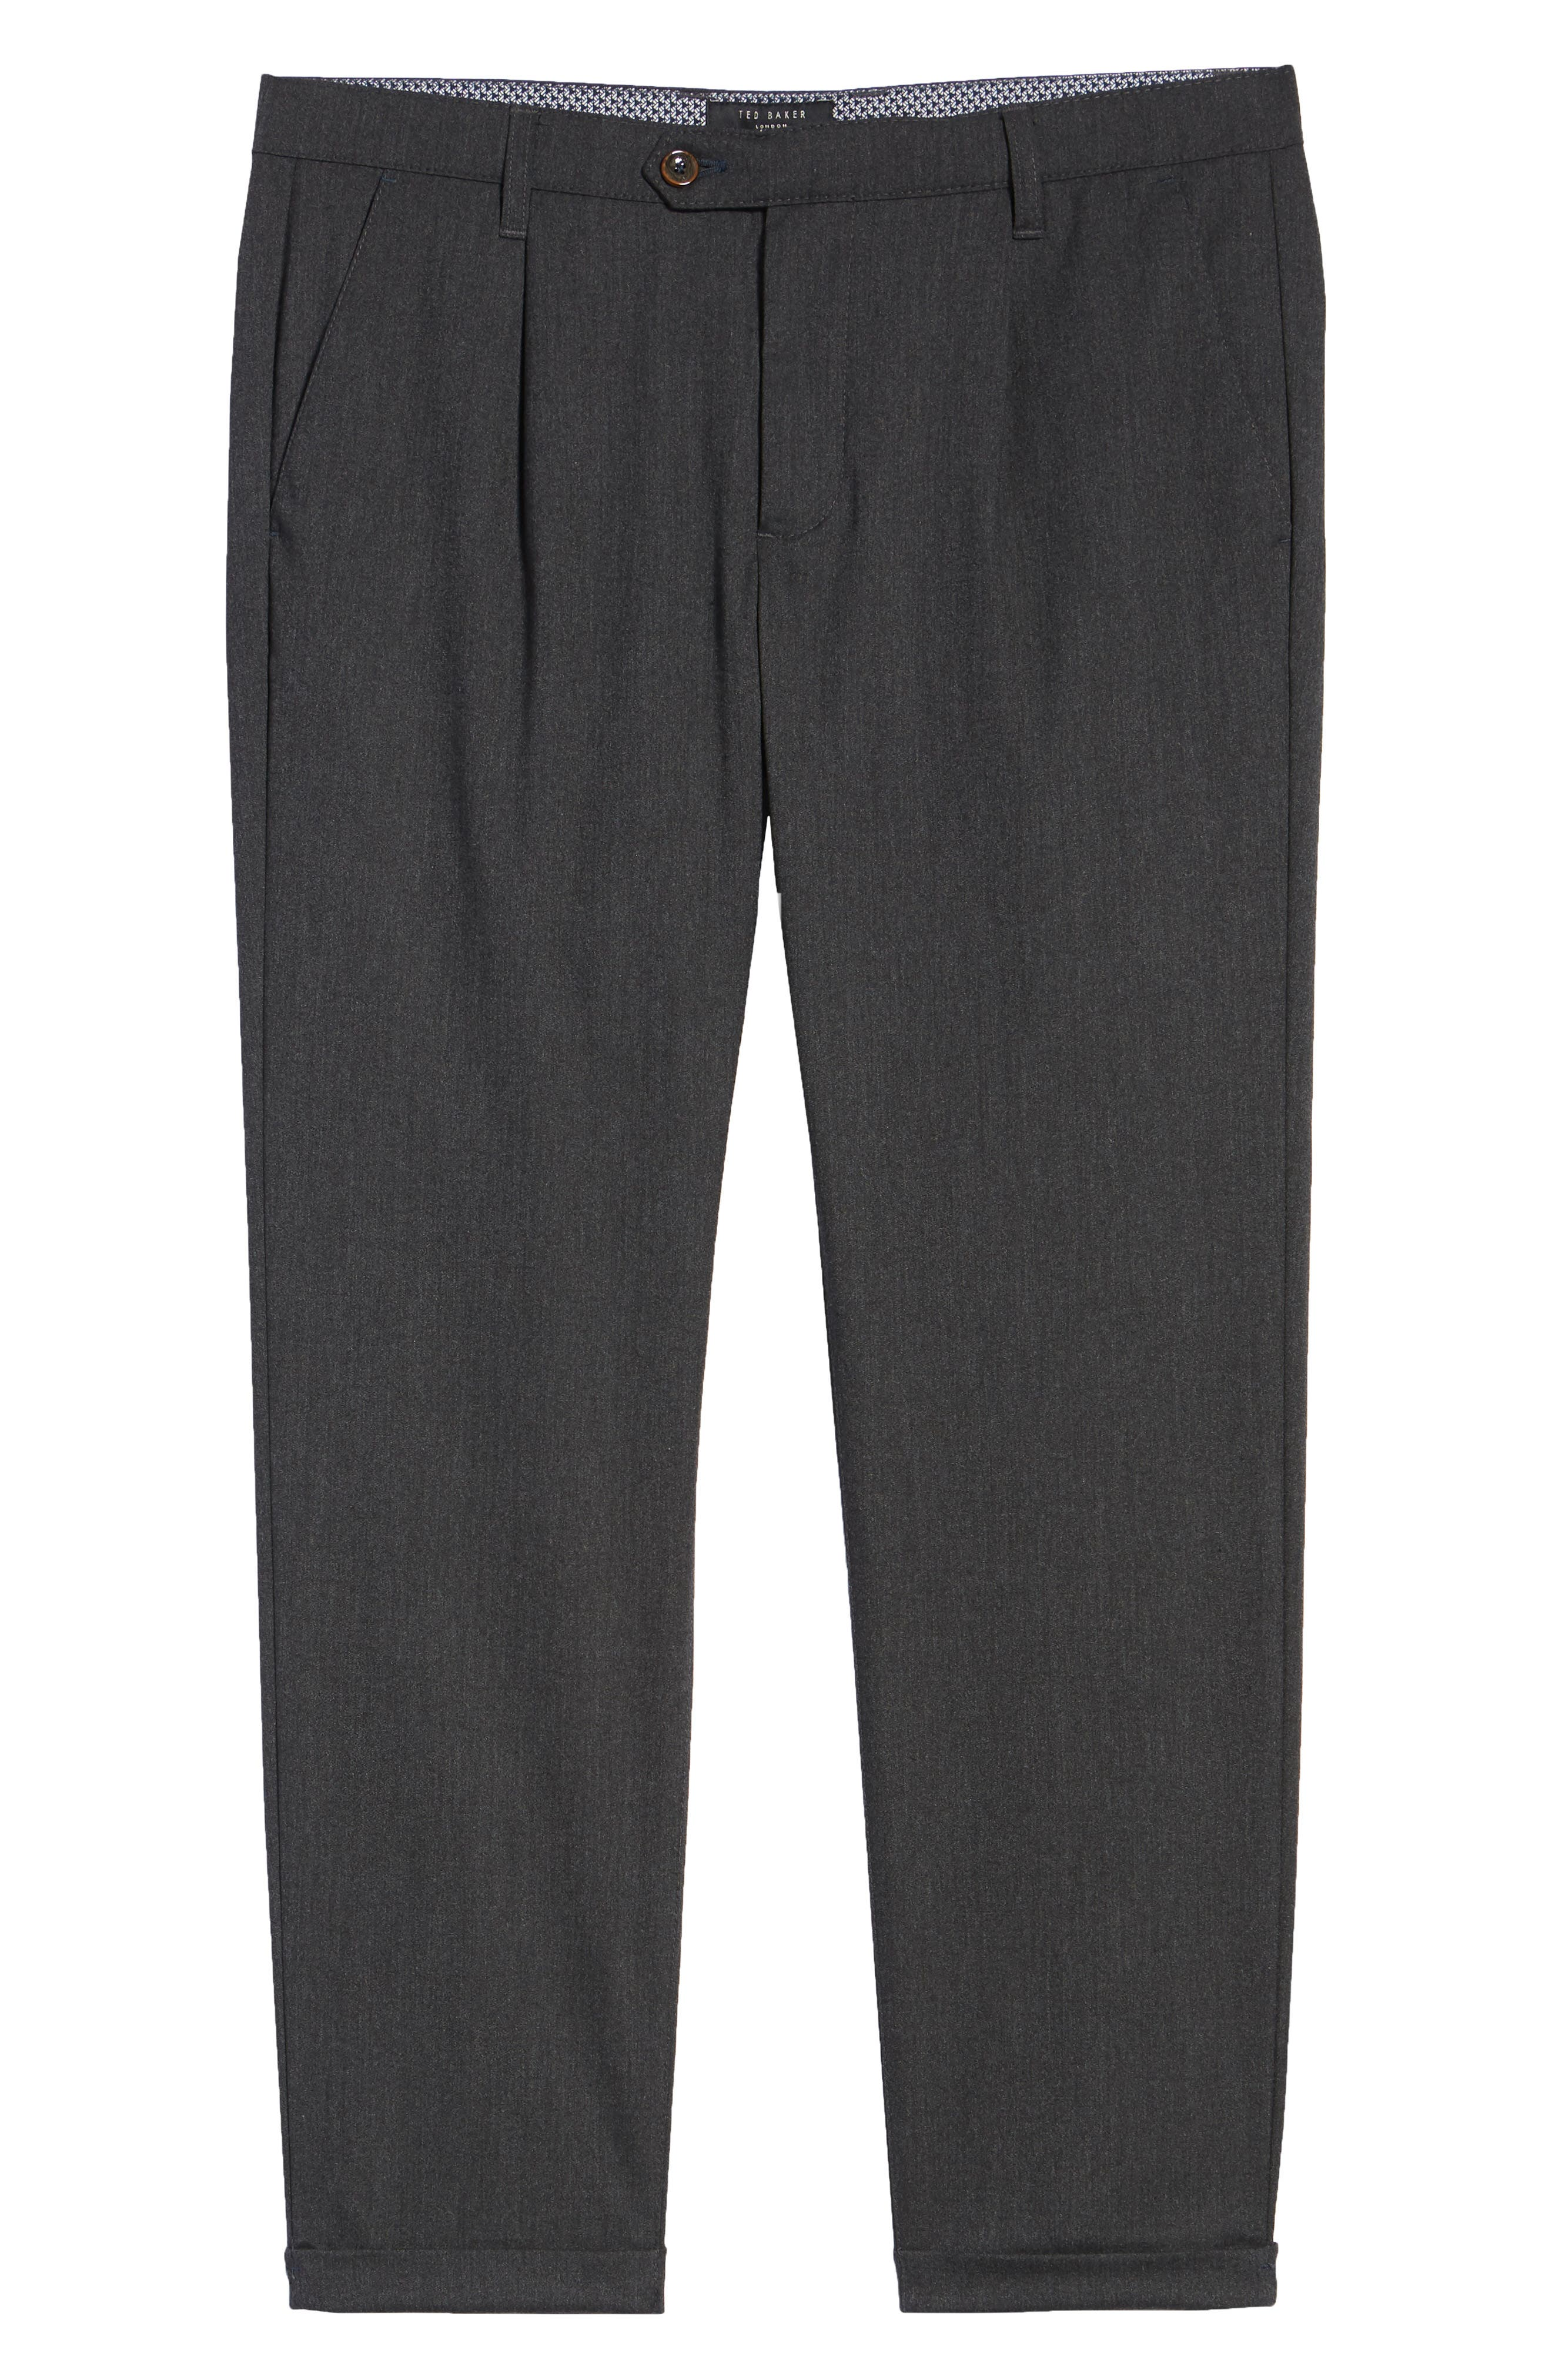 TED BAKER LONDON,                             Champi Pleated Cropped Pants,                             Alternate thumbnail 6, color,                             001